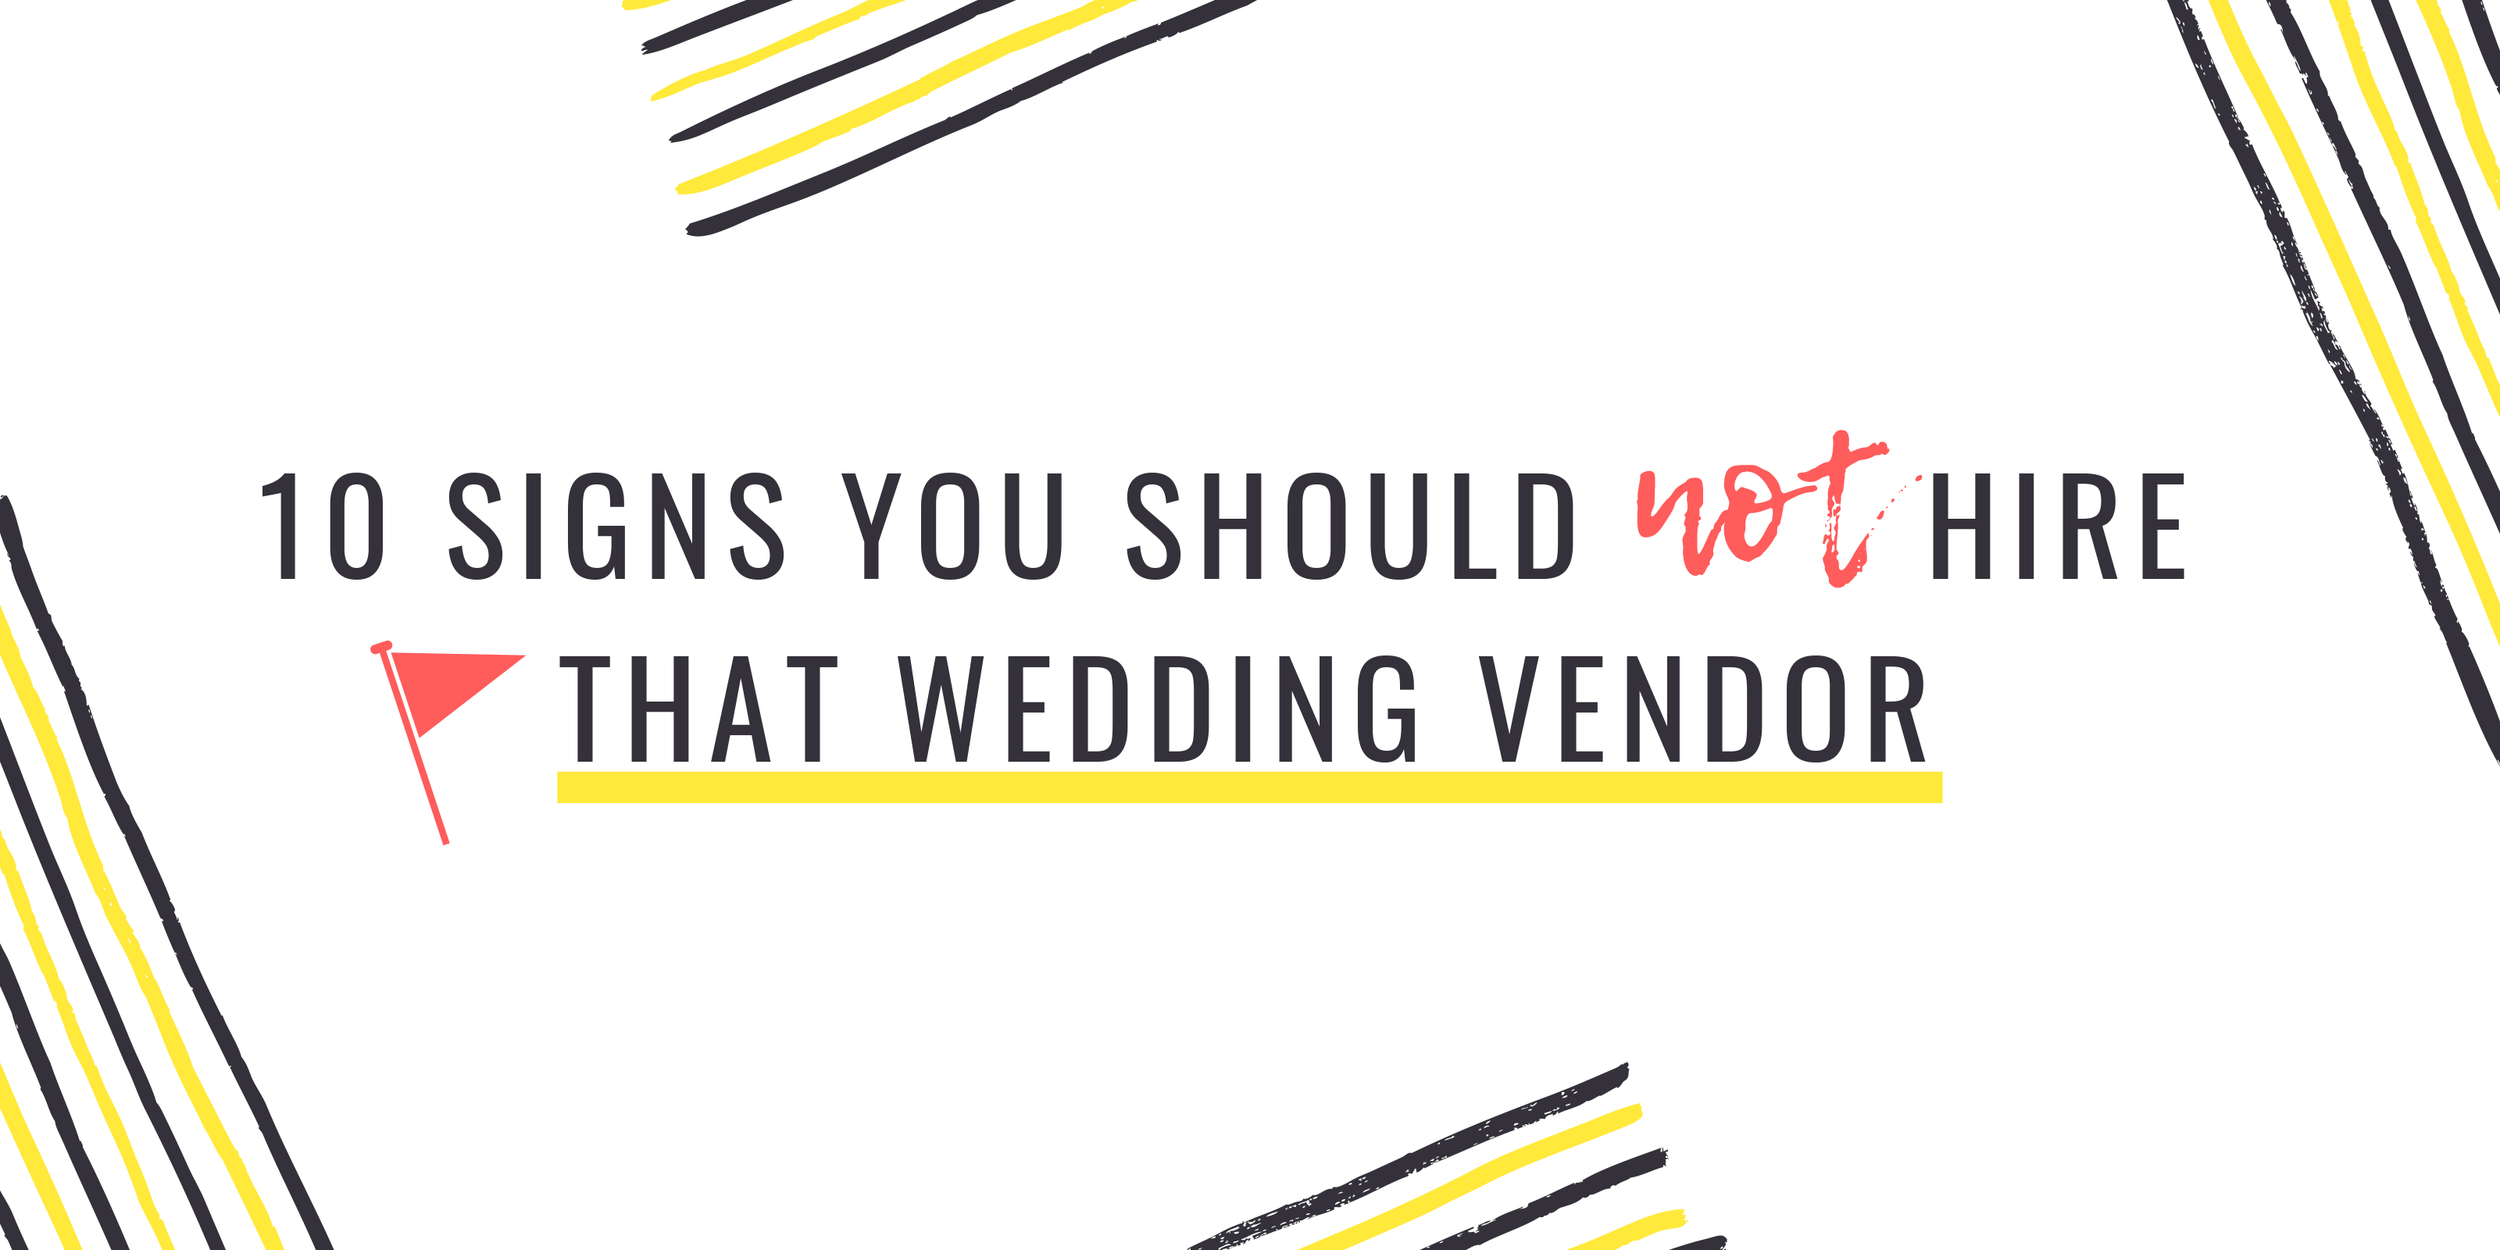 Wedding Vendor Red Flags PNG.png